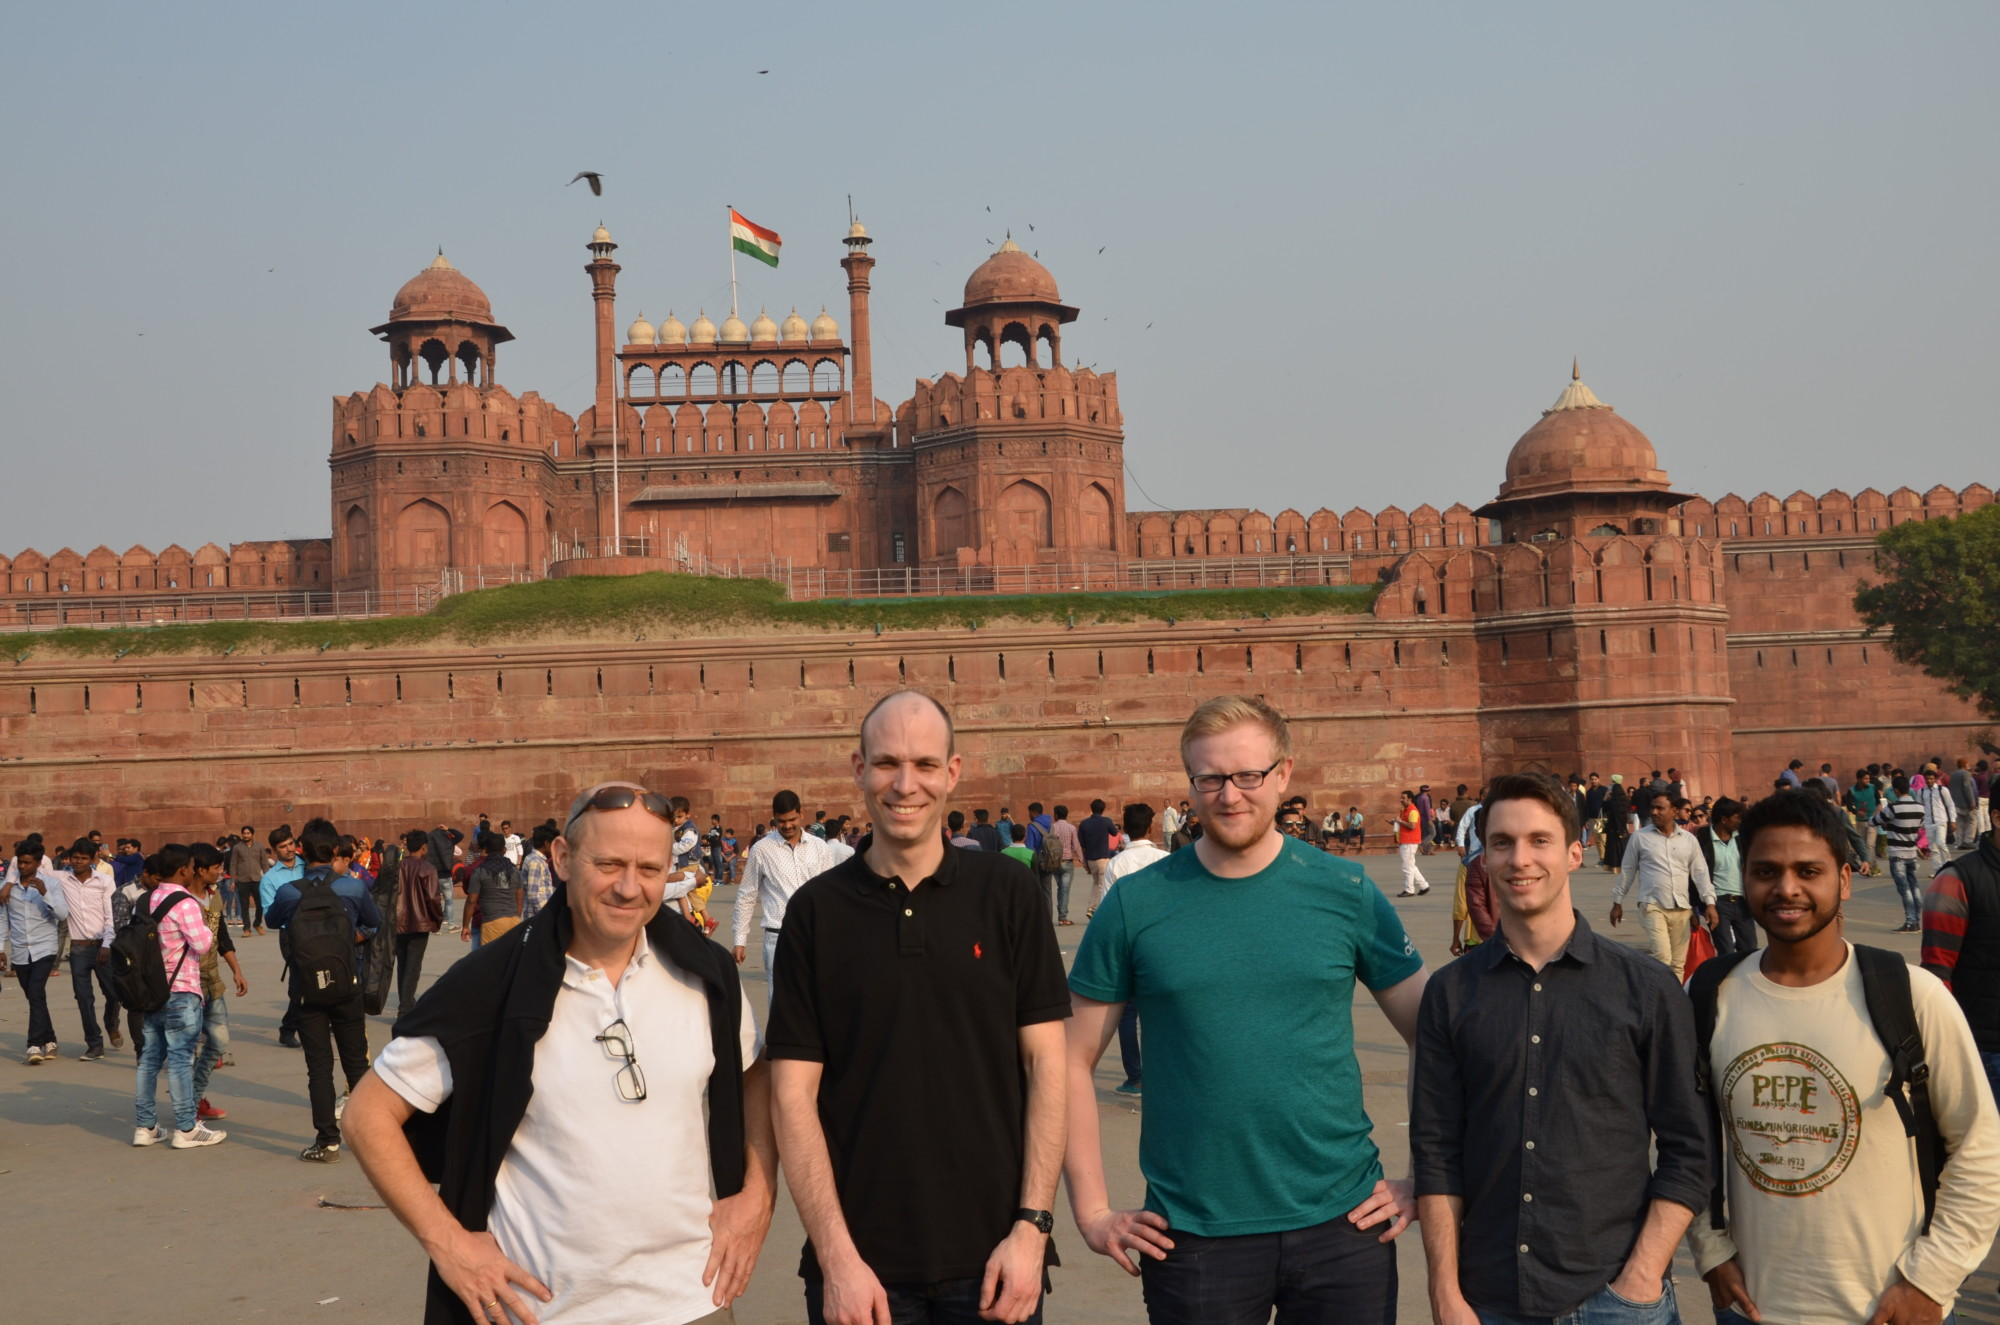 Group photo of five researchers from the technical faculties at Friedrich-Alexander-Universität Erlangen-Nürnberg and the Indian Institute of Technology Delhi visiting Red Fort in Delhi.